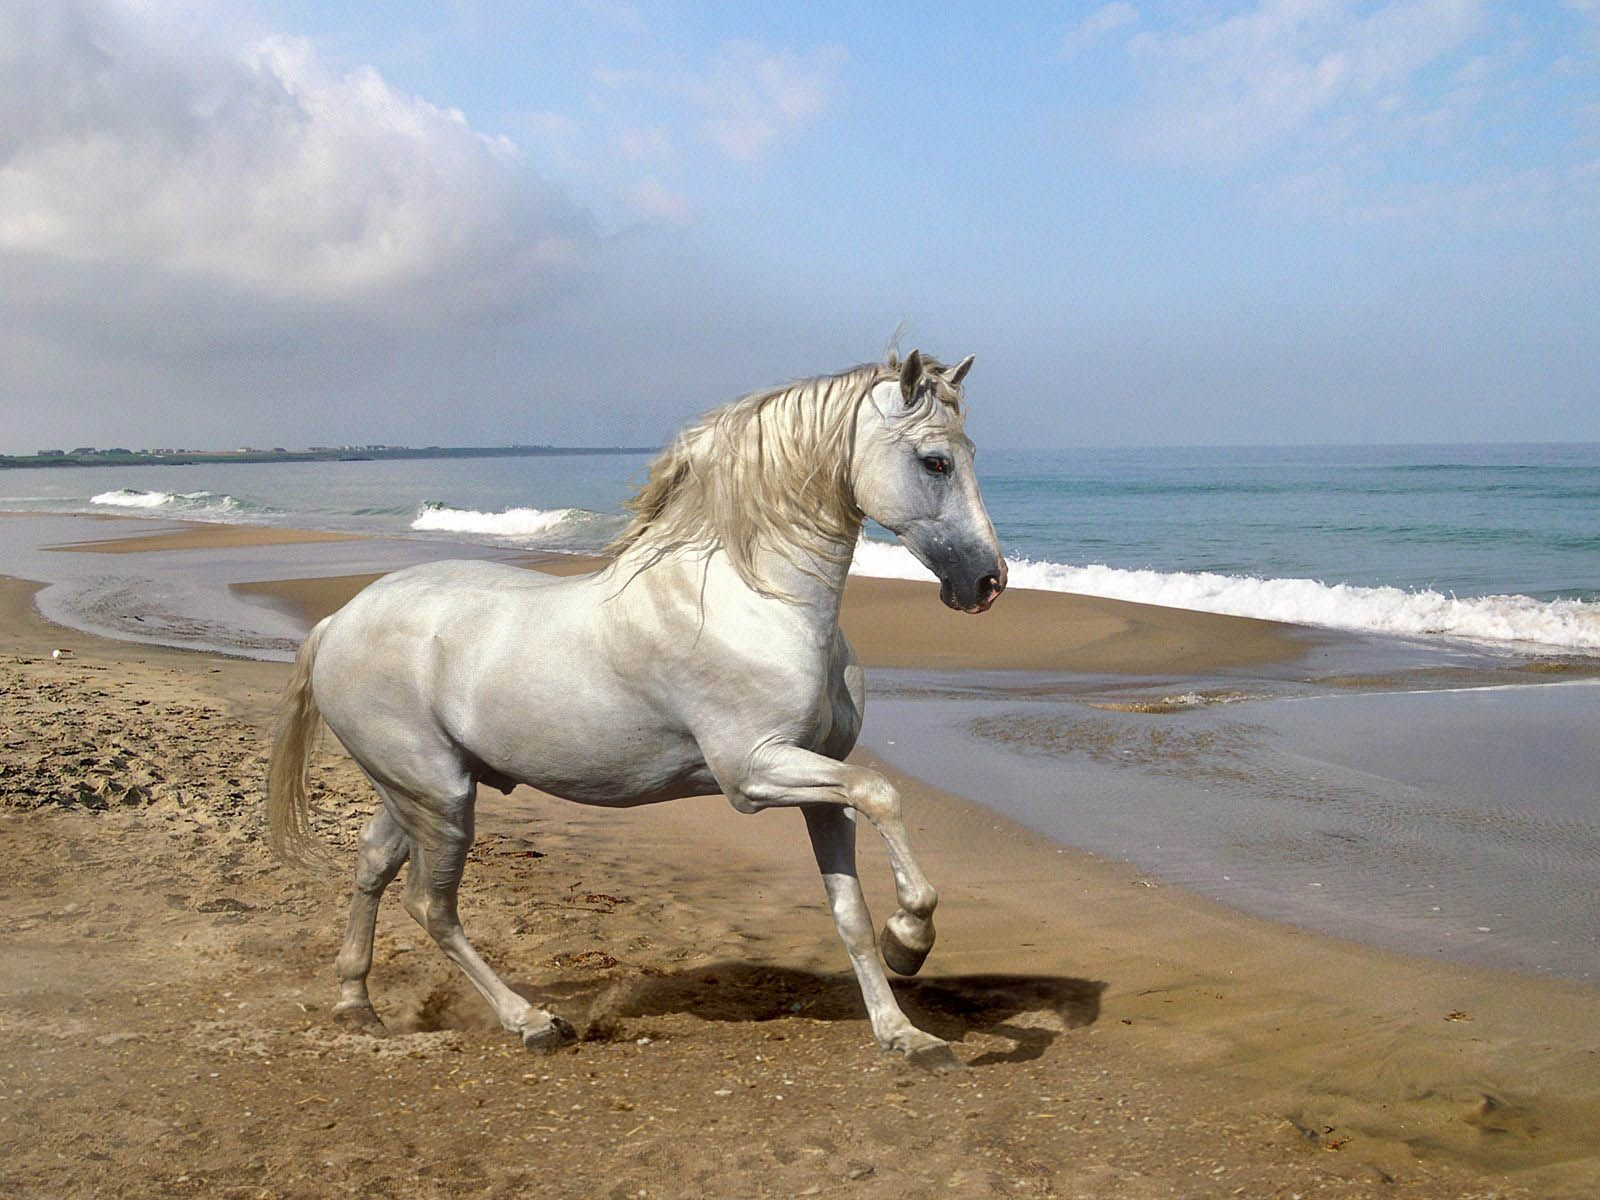 Beautiful white horse on the beach 1600x1200 wallpaper chevaux beautiful white horse on the beach 1600x1200 wallpaper publicscrutiny Gallery